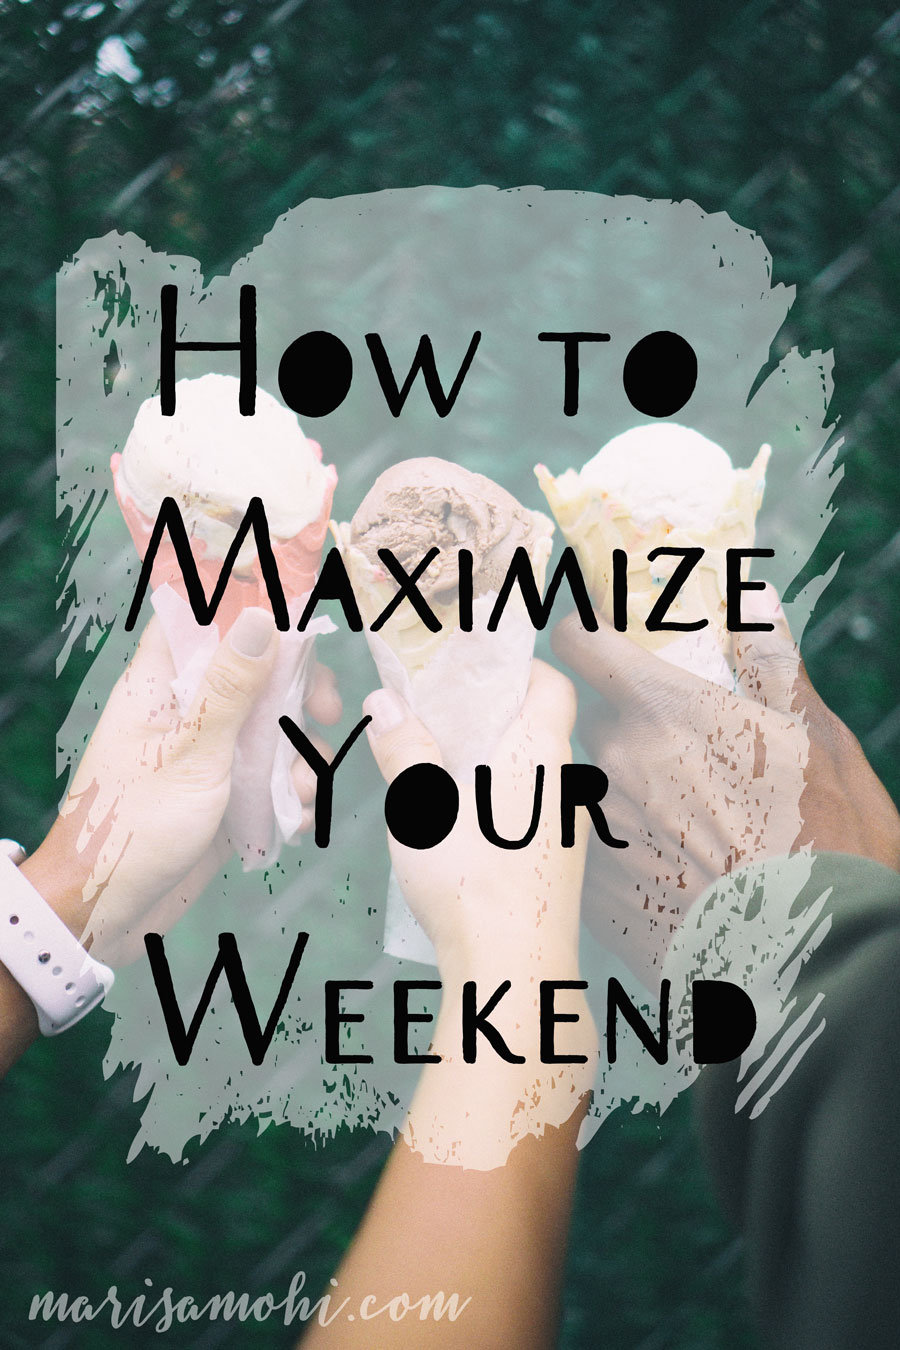 How to Maximize Your Weekend